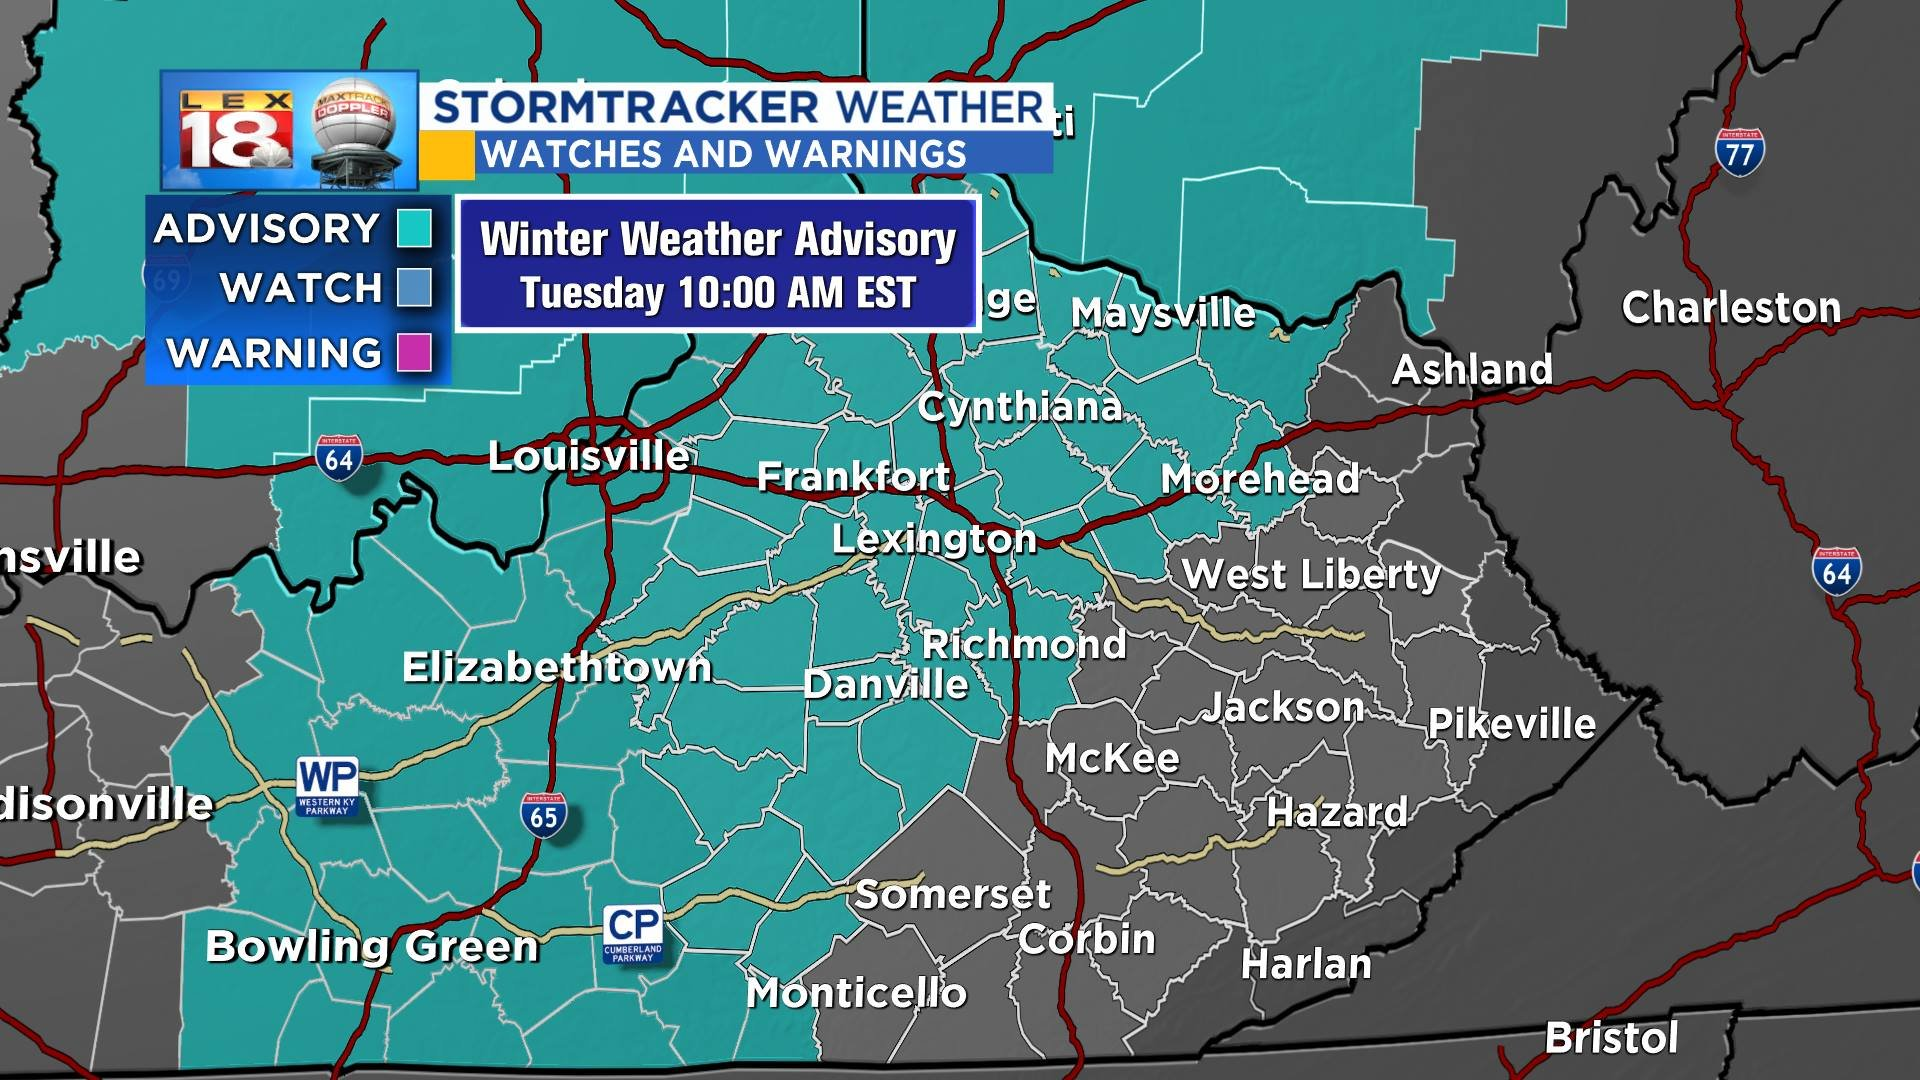 Winter weather advisory issued for Tuesday